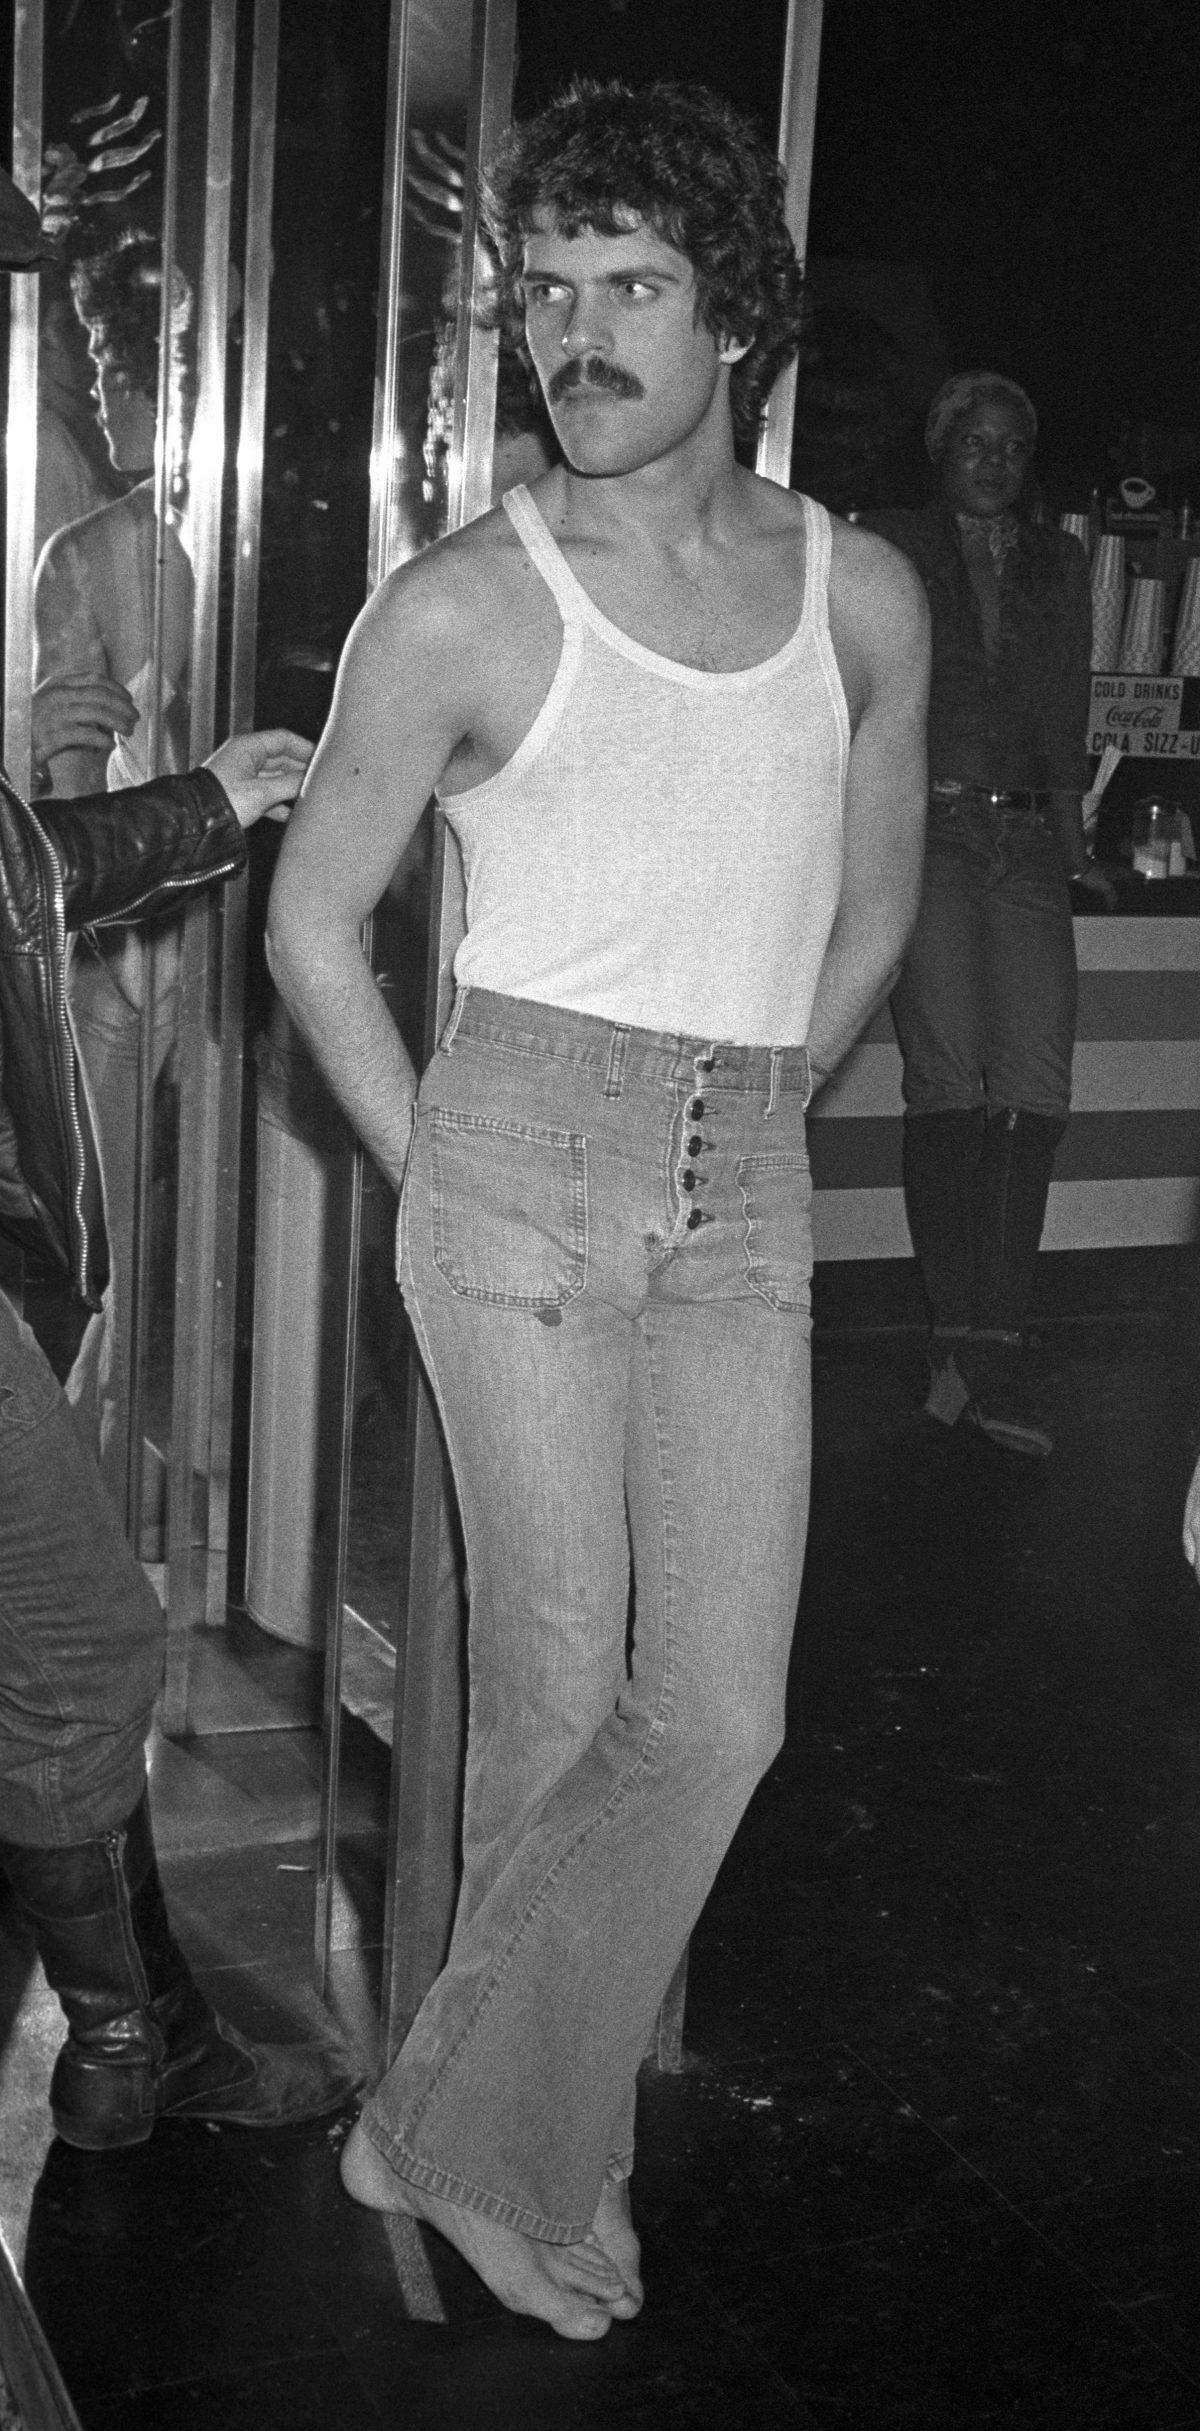 A man with a moustache wearing jeans and a tank top at the Continental Club bath house in New York - Feb 4 1972